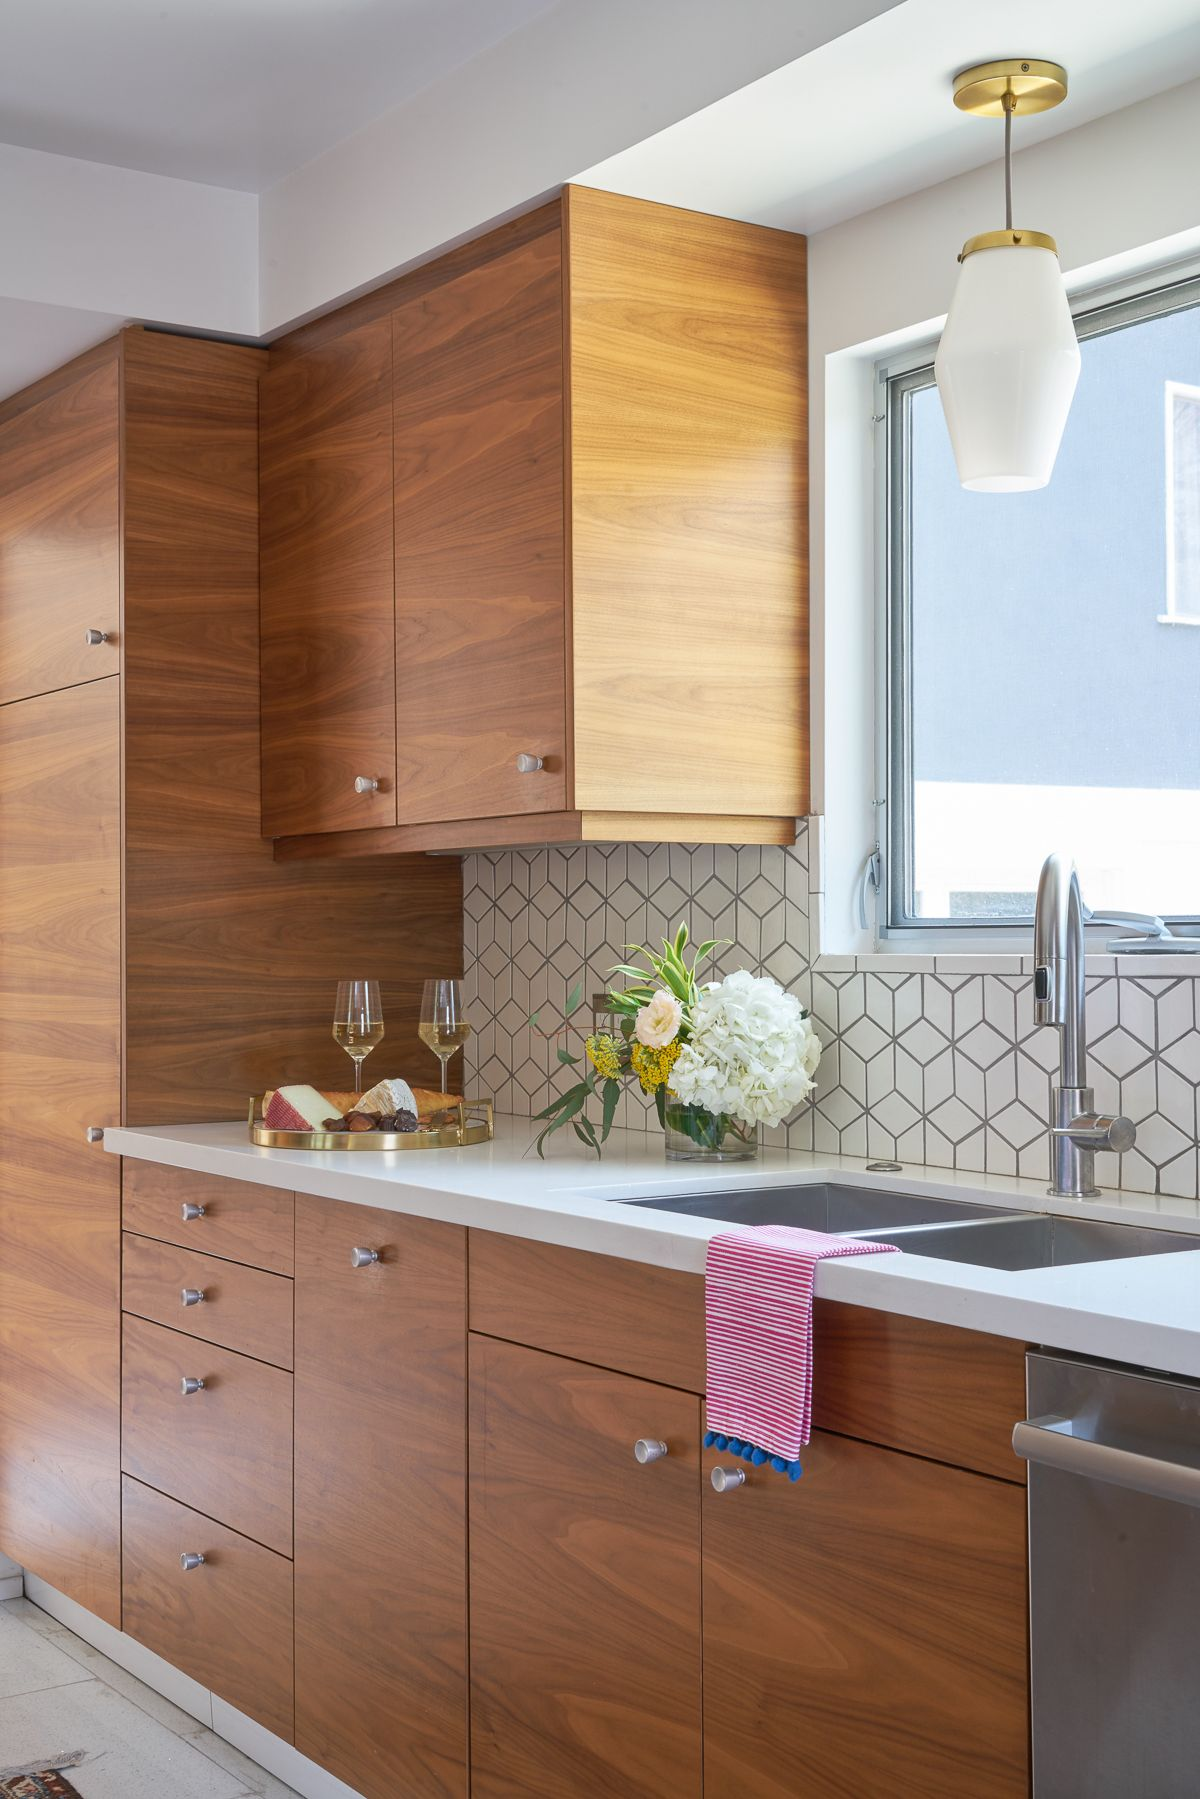 Designing An Ikea Semihandmade Kitchen What You Need To Know